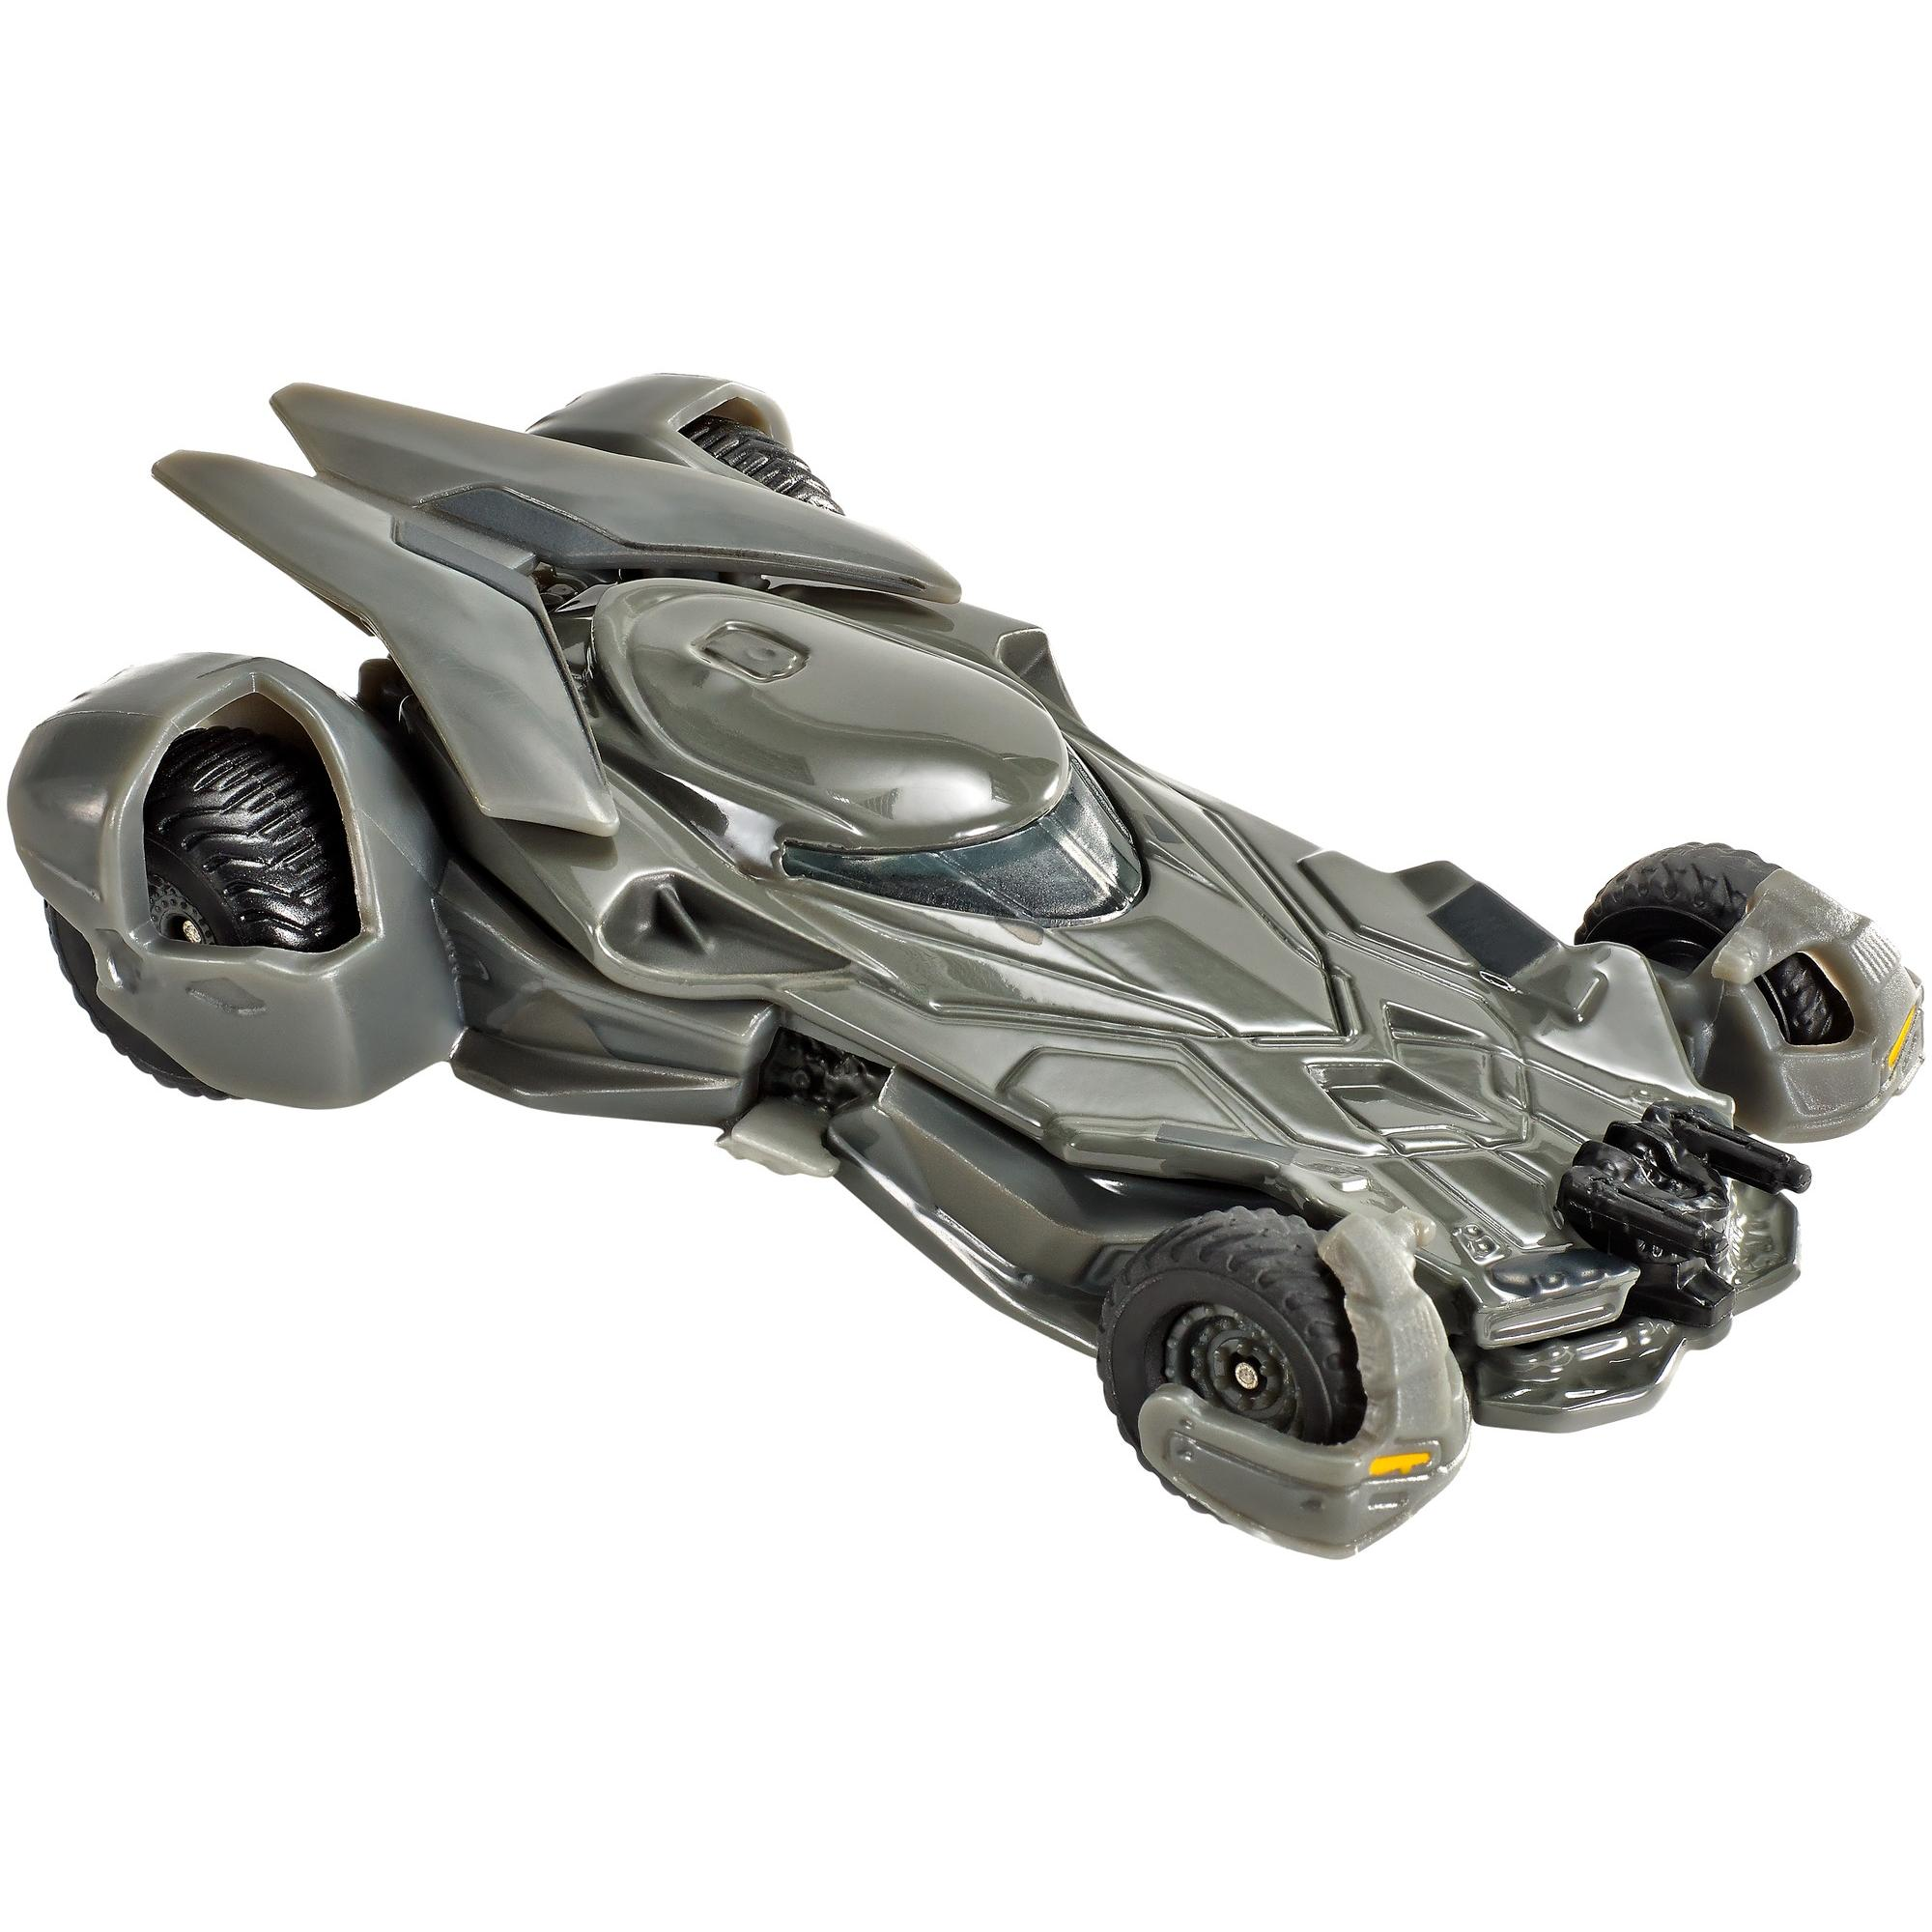 Hot Wheels 1:50 Batman Vehicle (Styles May Vary)